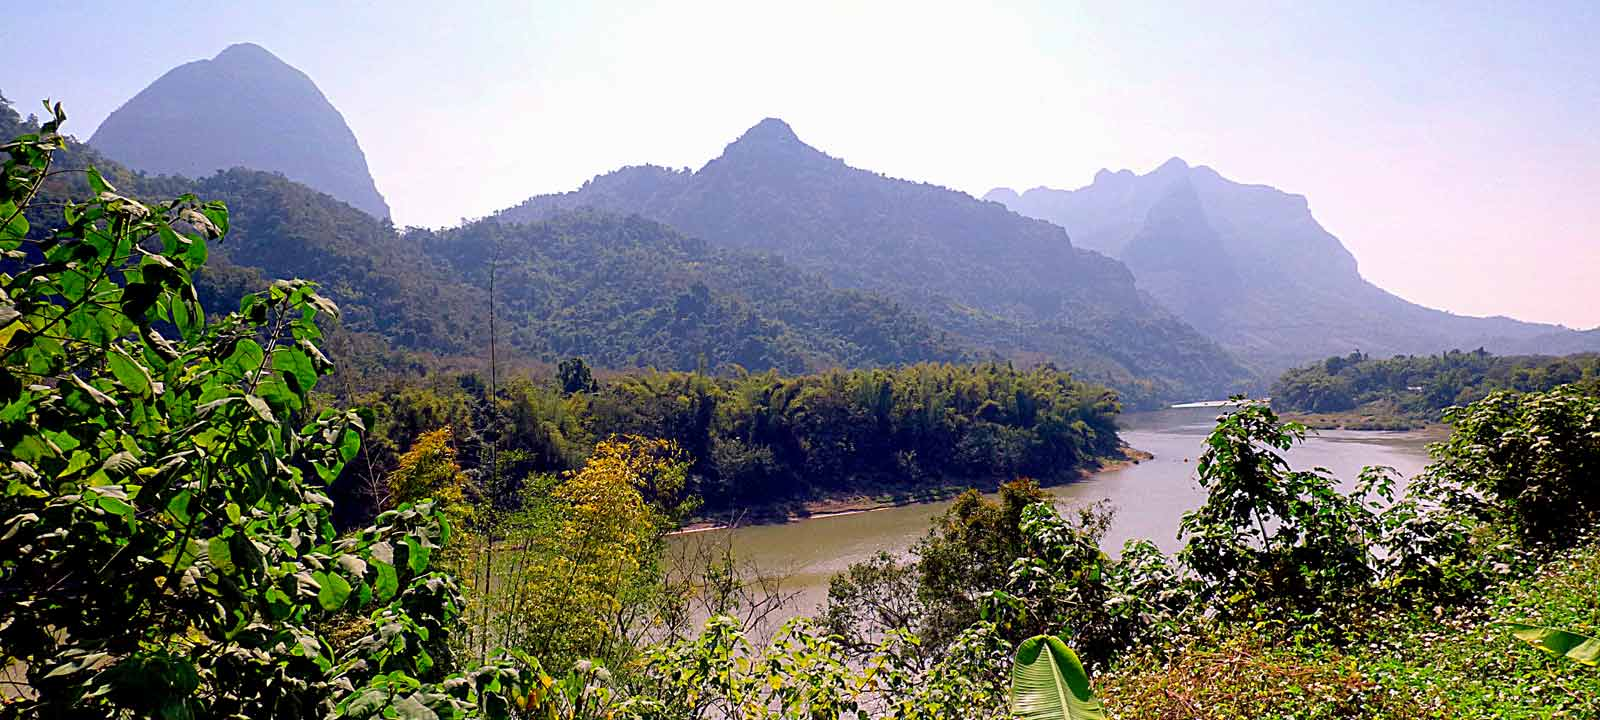 Voyage Nong Khiaw,  Asiatica Trave